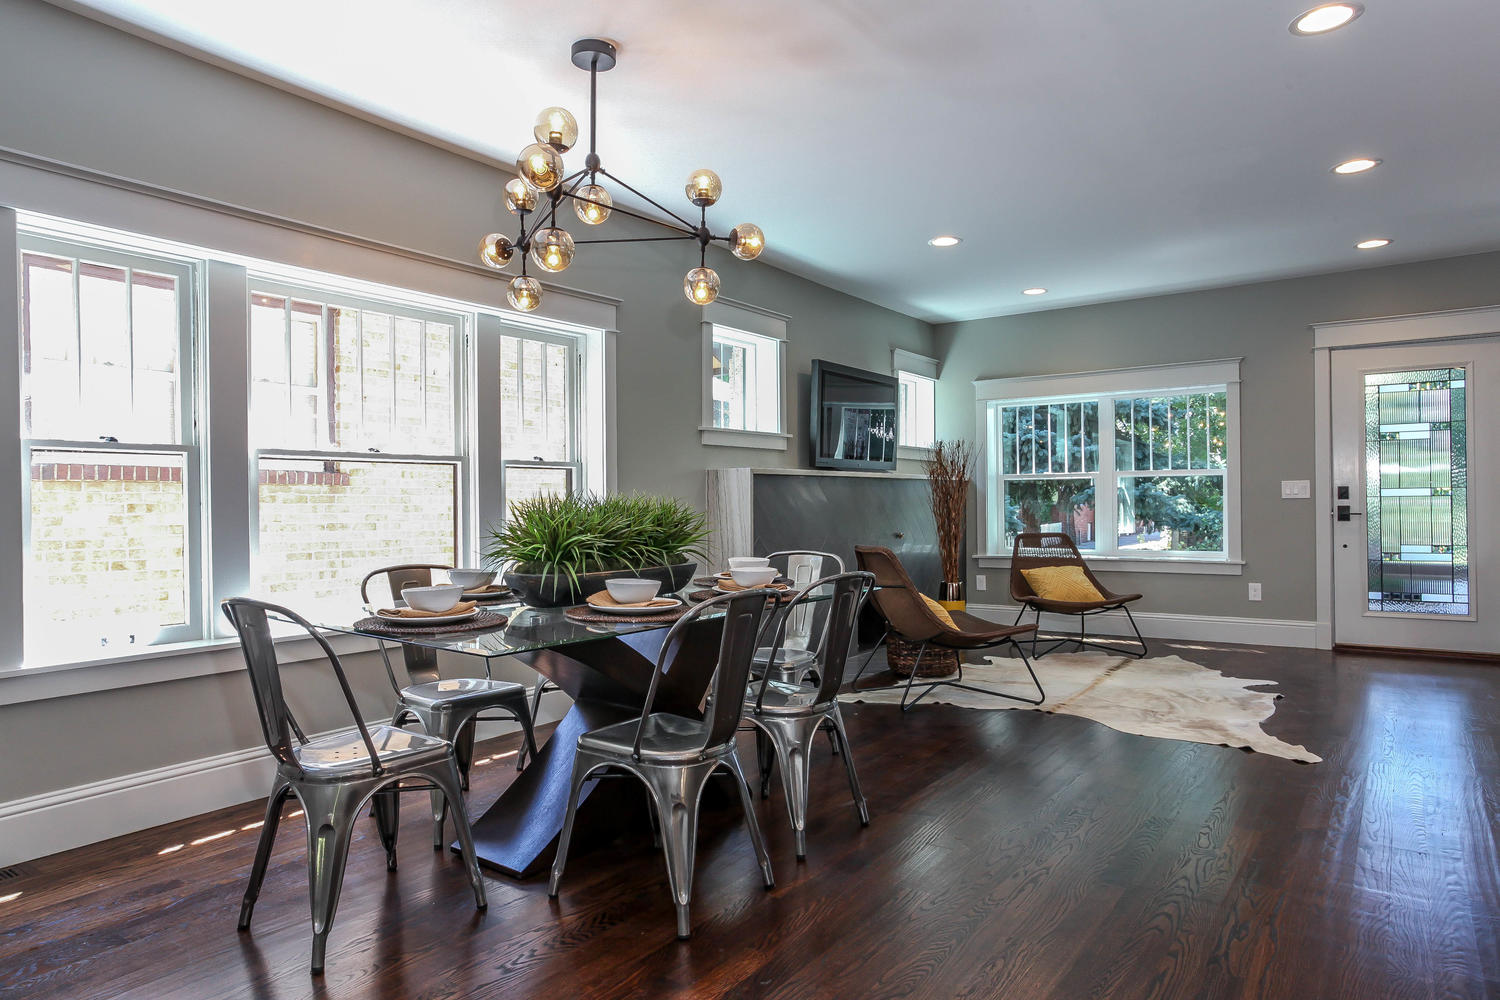 HGTV home staging